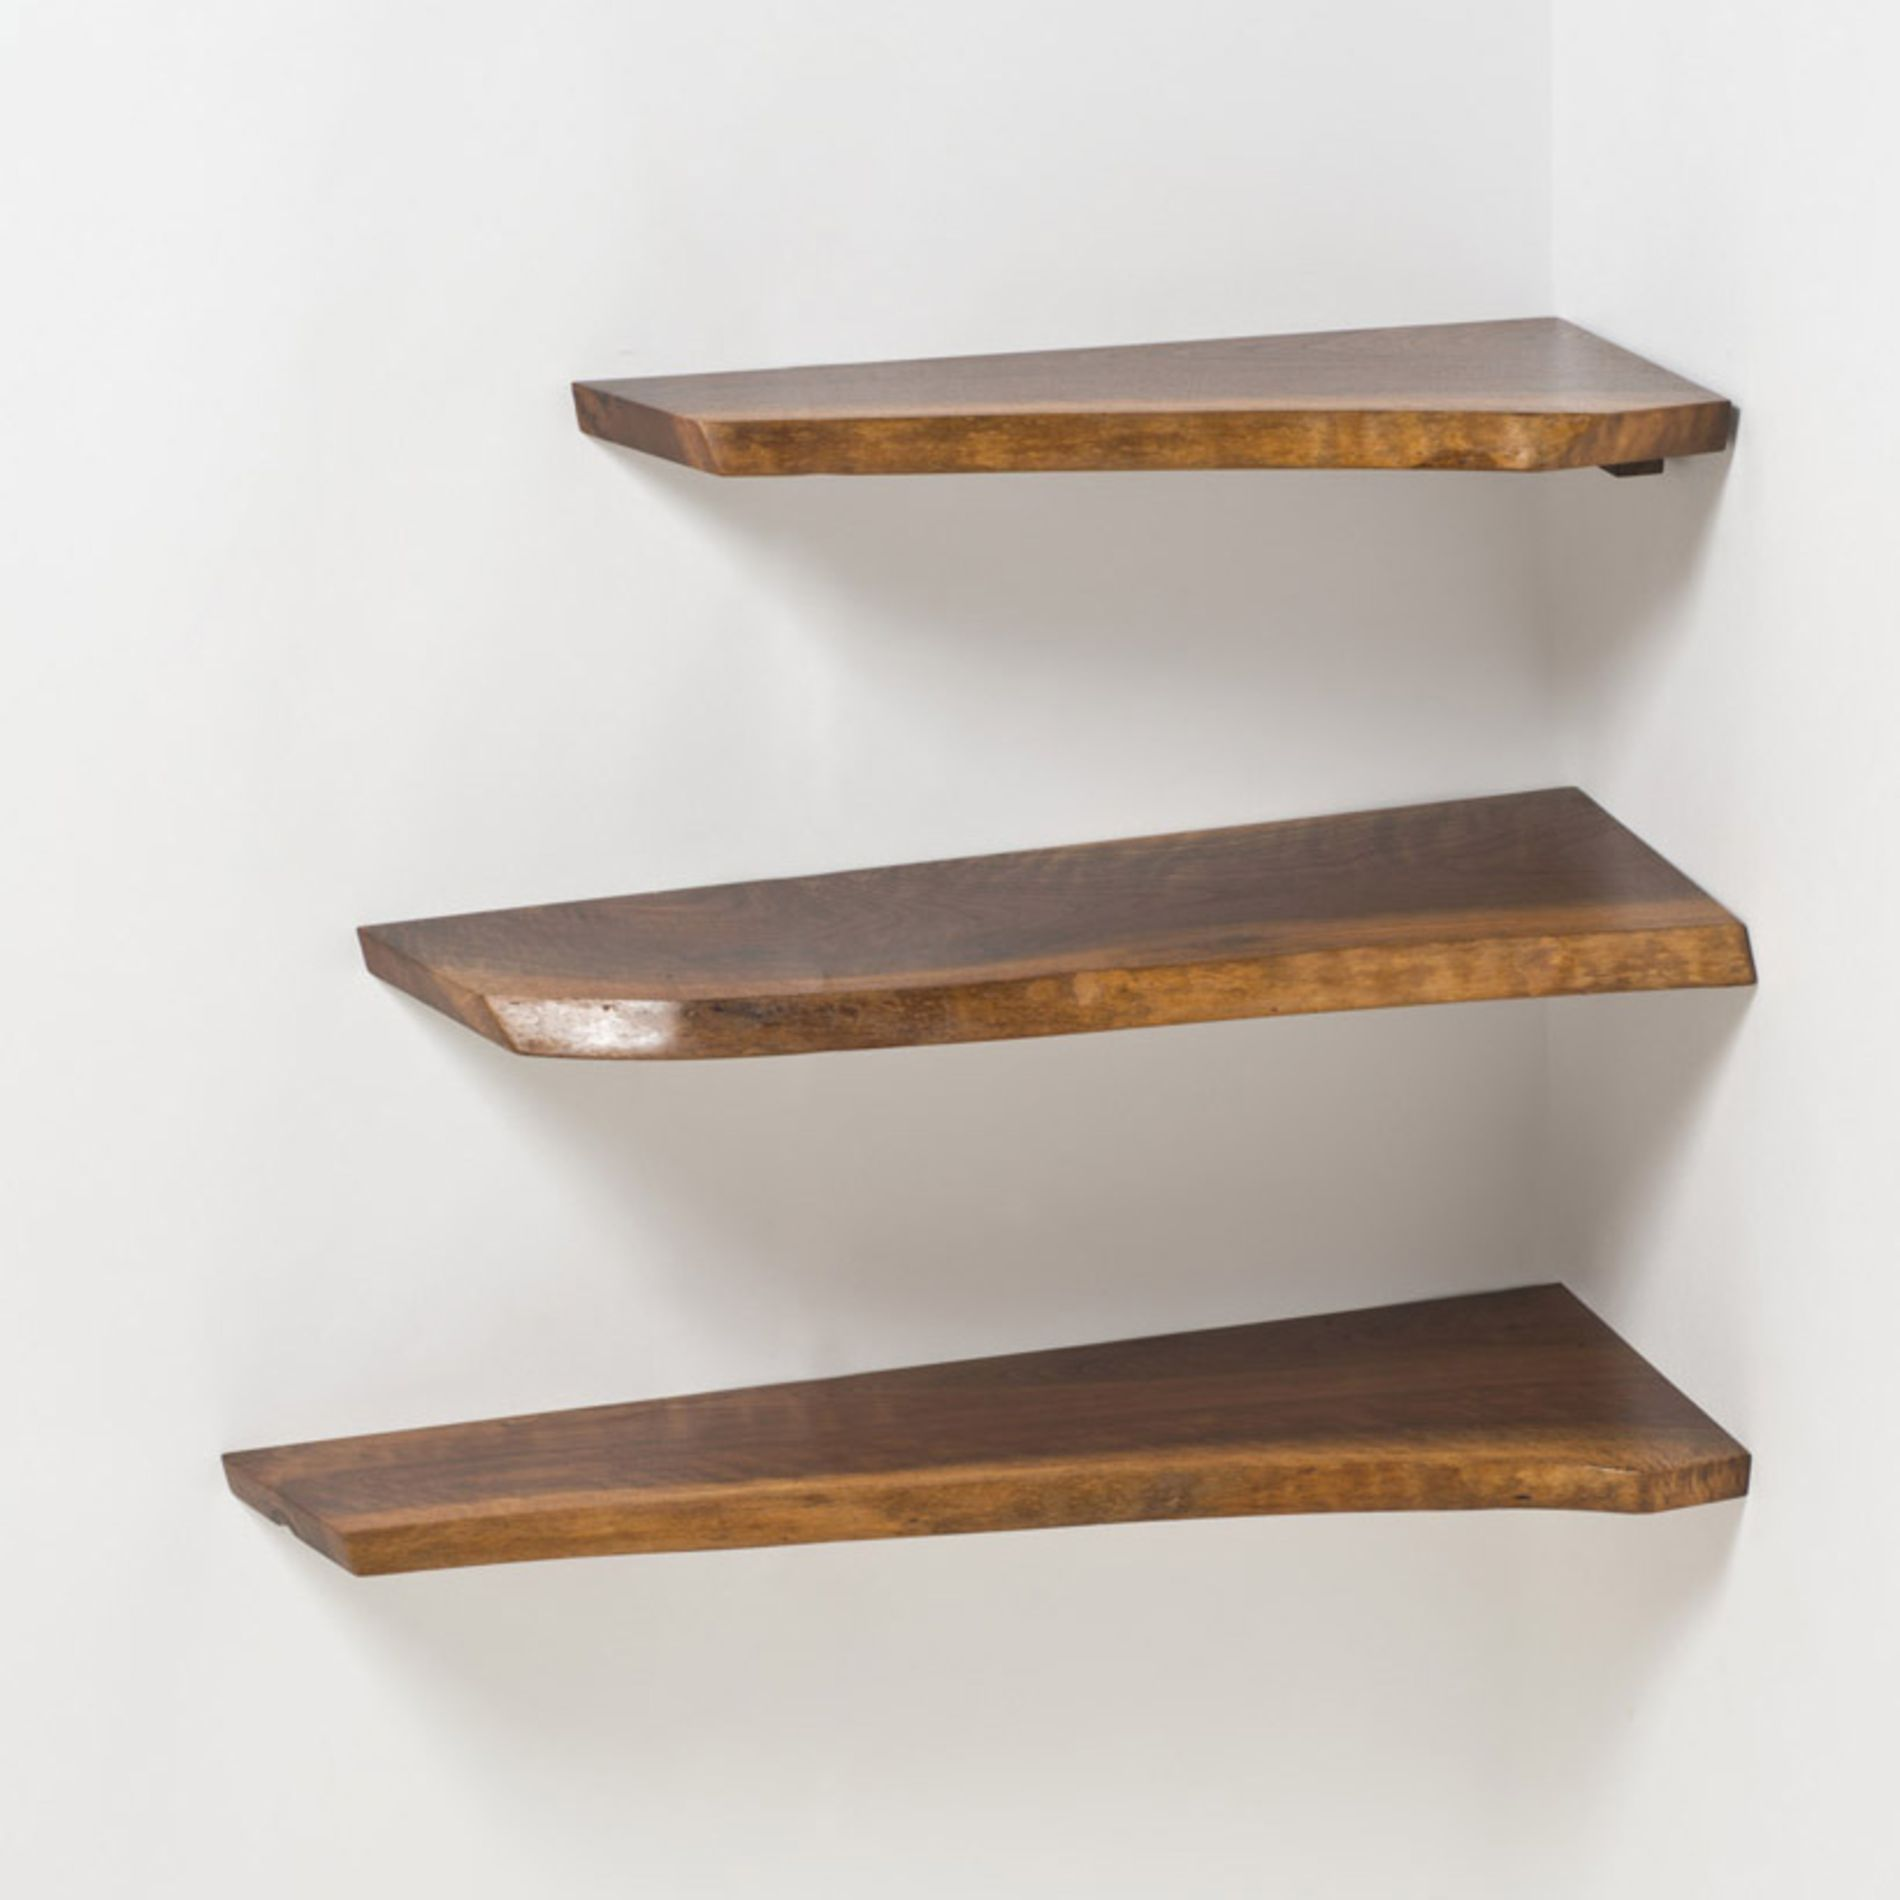 george nakashima walnut corner shelves mcm design canvas driftwood floating shelf entryway wall storage mini hall bench shaped ikea bathroom ceiling lights best ergonomic office